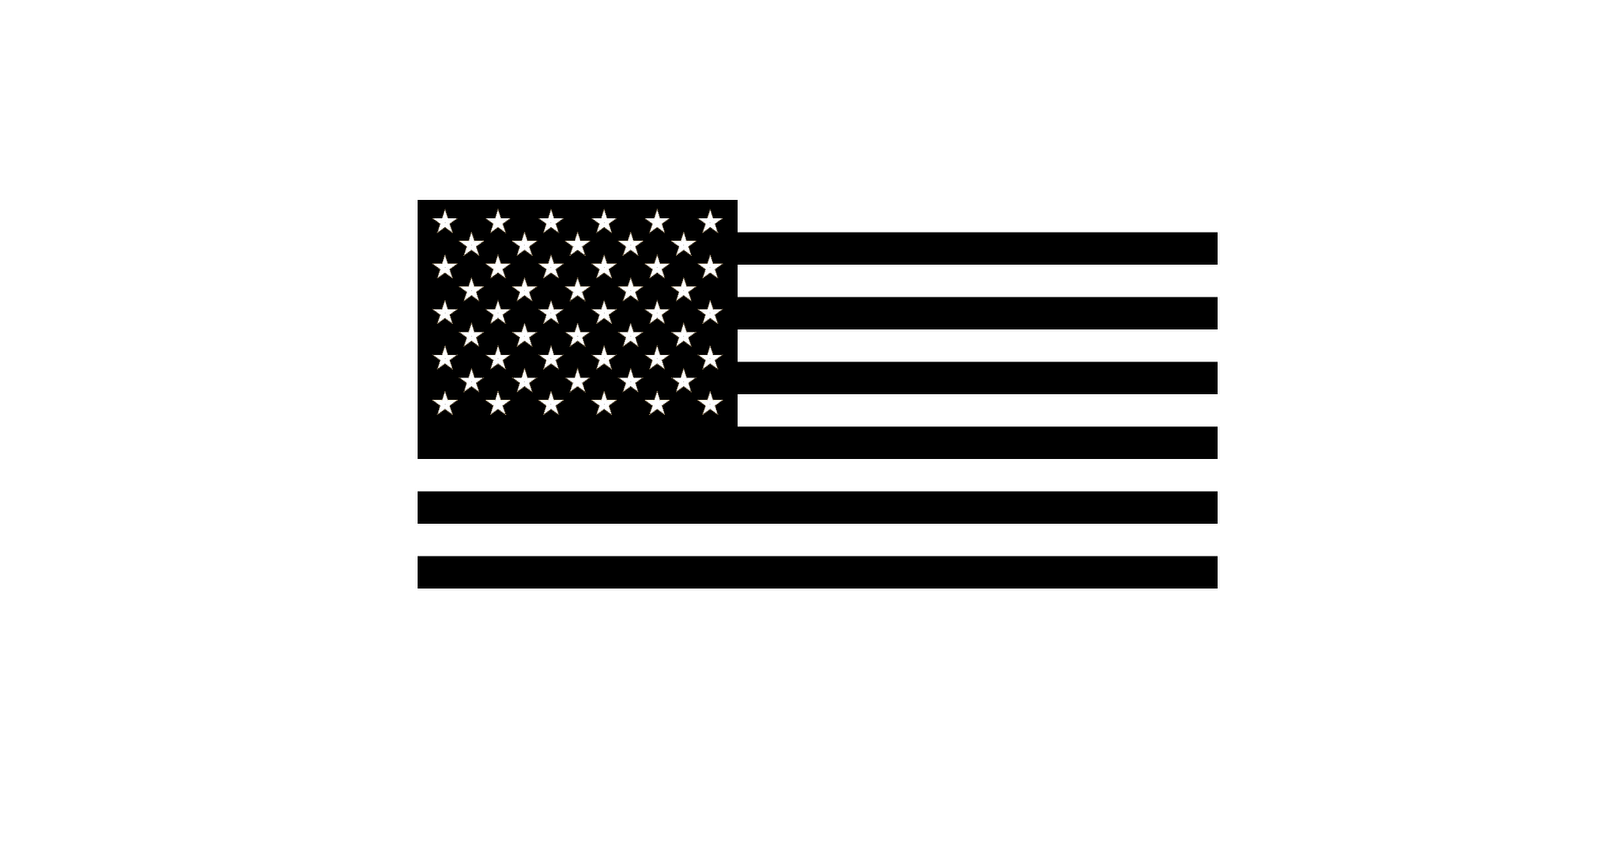 Black And White American Flag Clipart Us Flag Patch White Border American Flag Clip Art Black N White Images Clipart Black And White